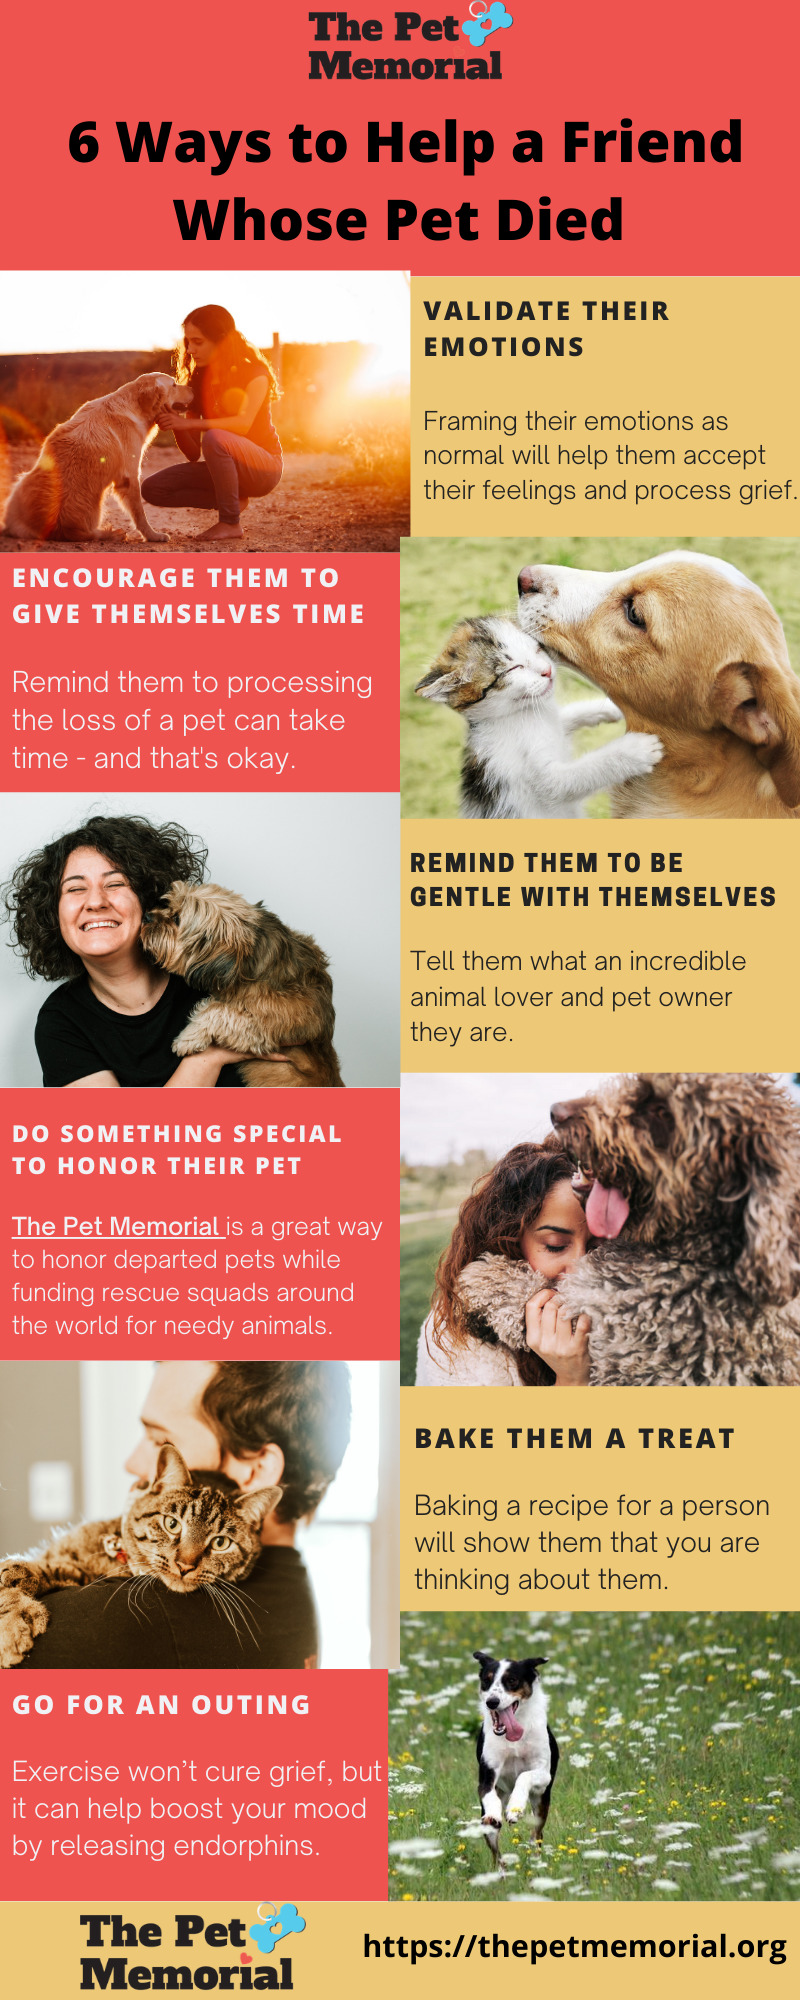 6 Ways to Help a Friend Whose Pet Died 3